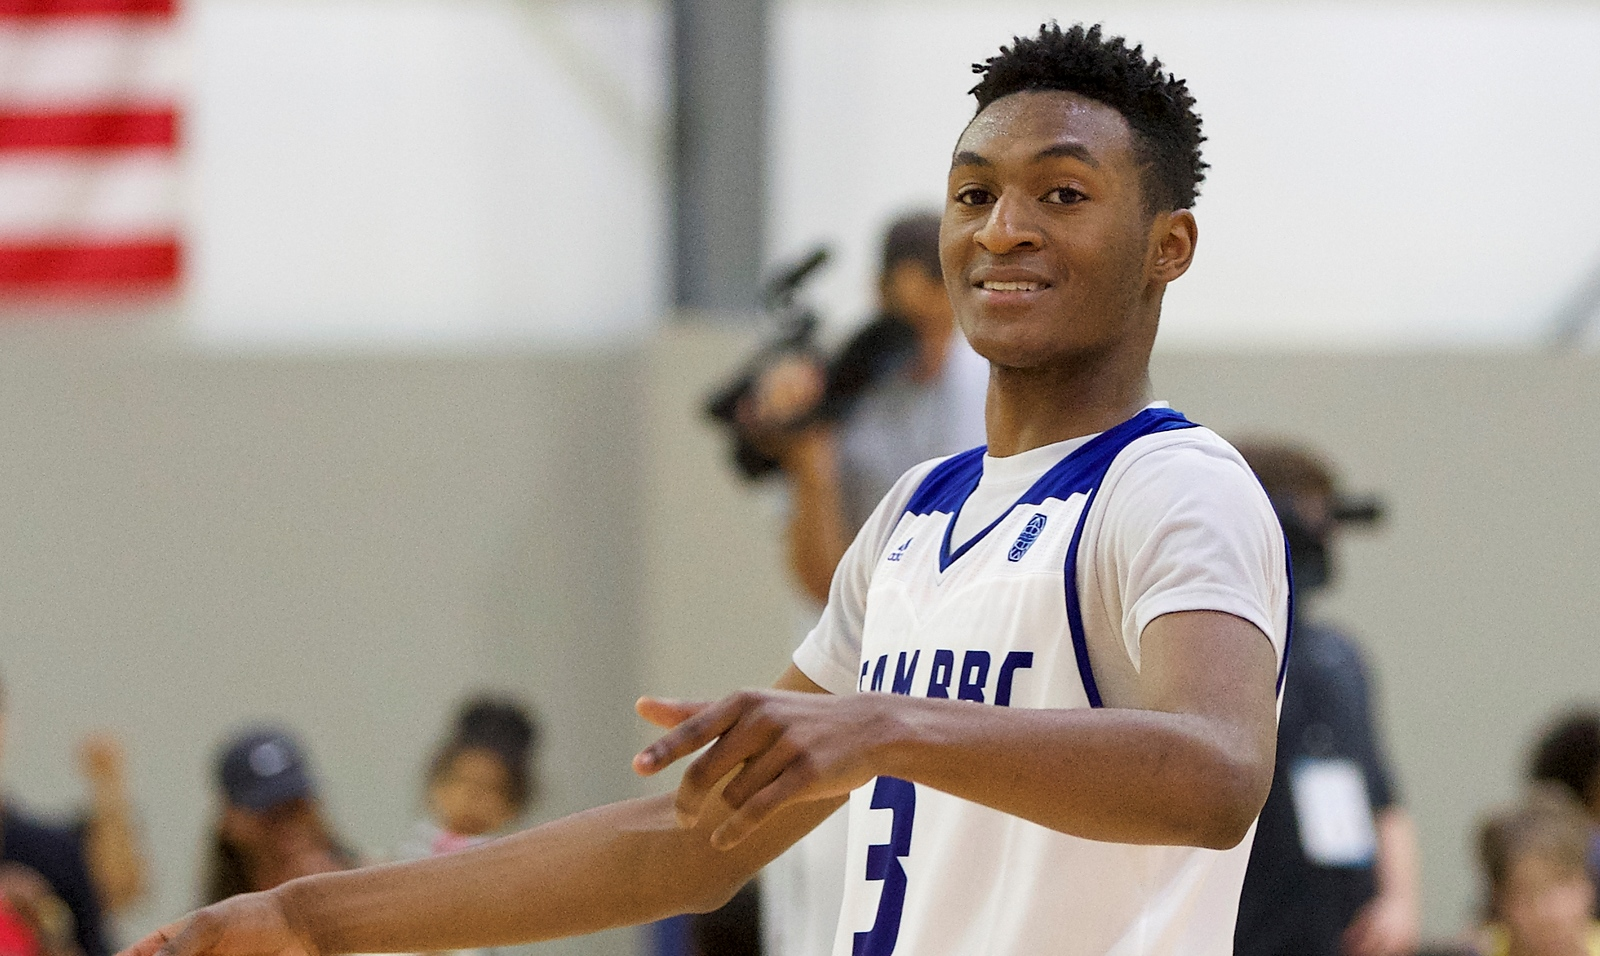 Immanuel Quickley adidas (Scout)